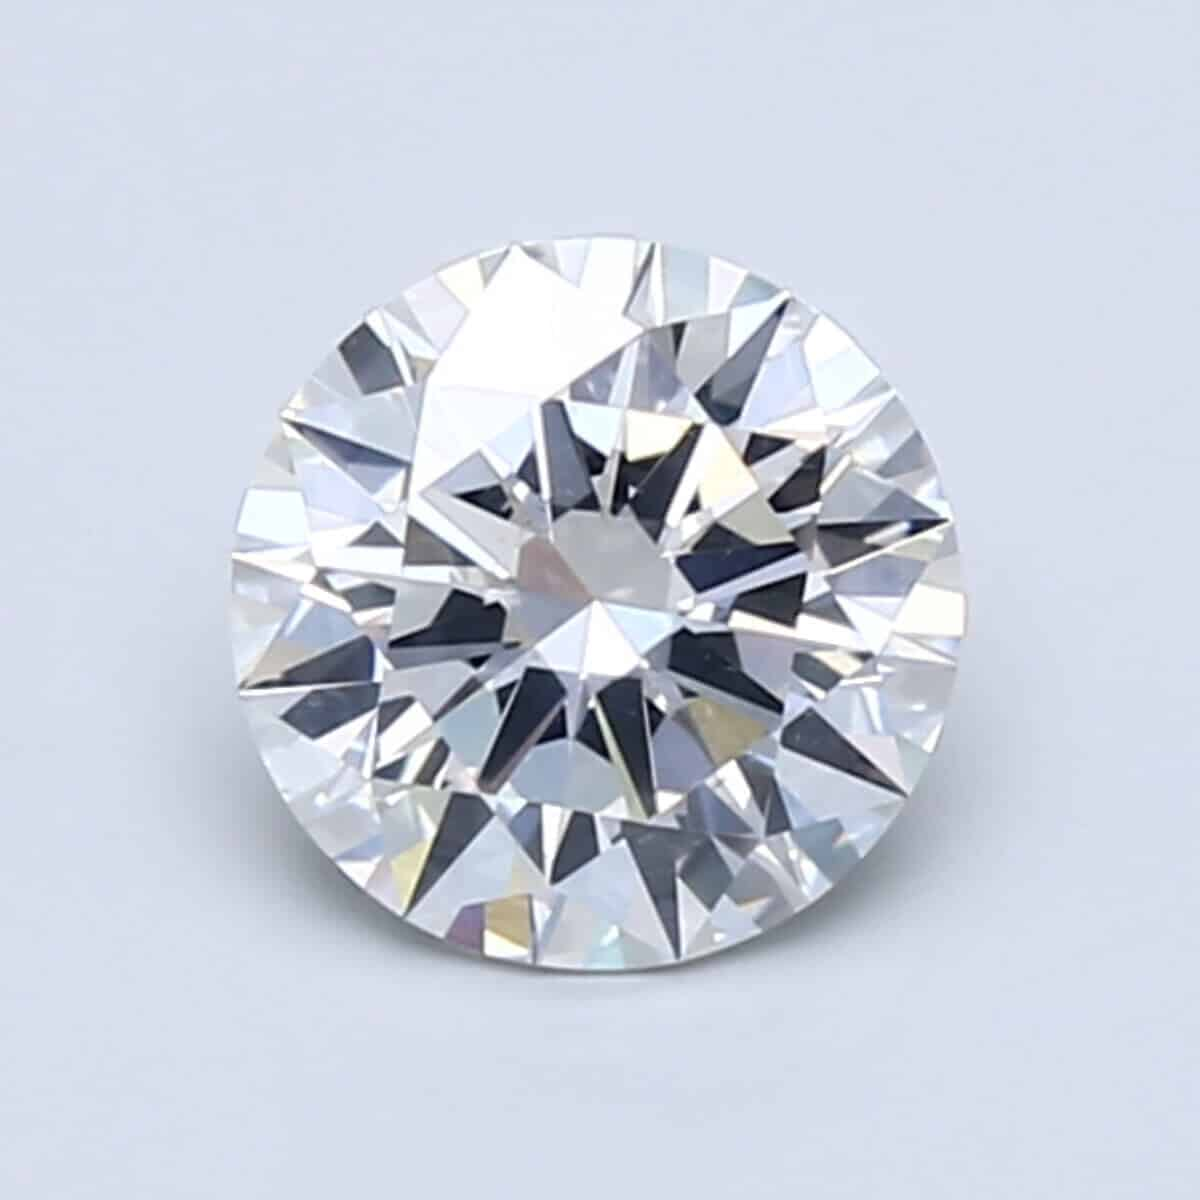 1.02ct H Color, SI1 Clarity Diamond from Blue Nile